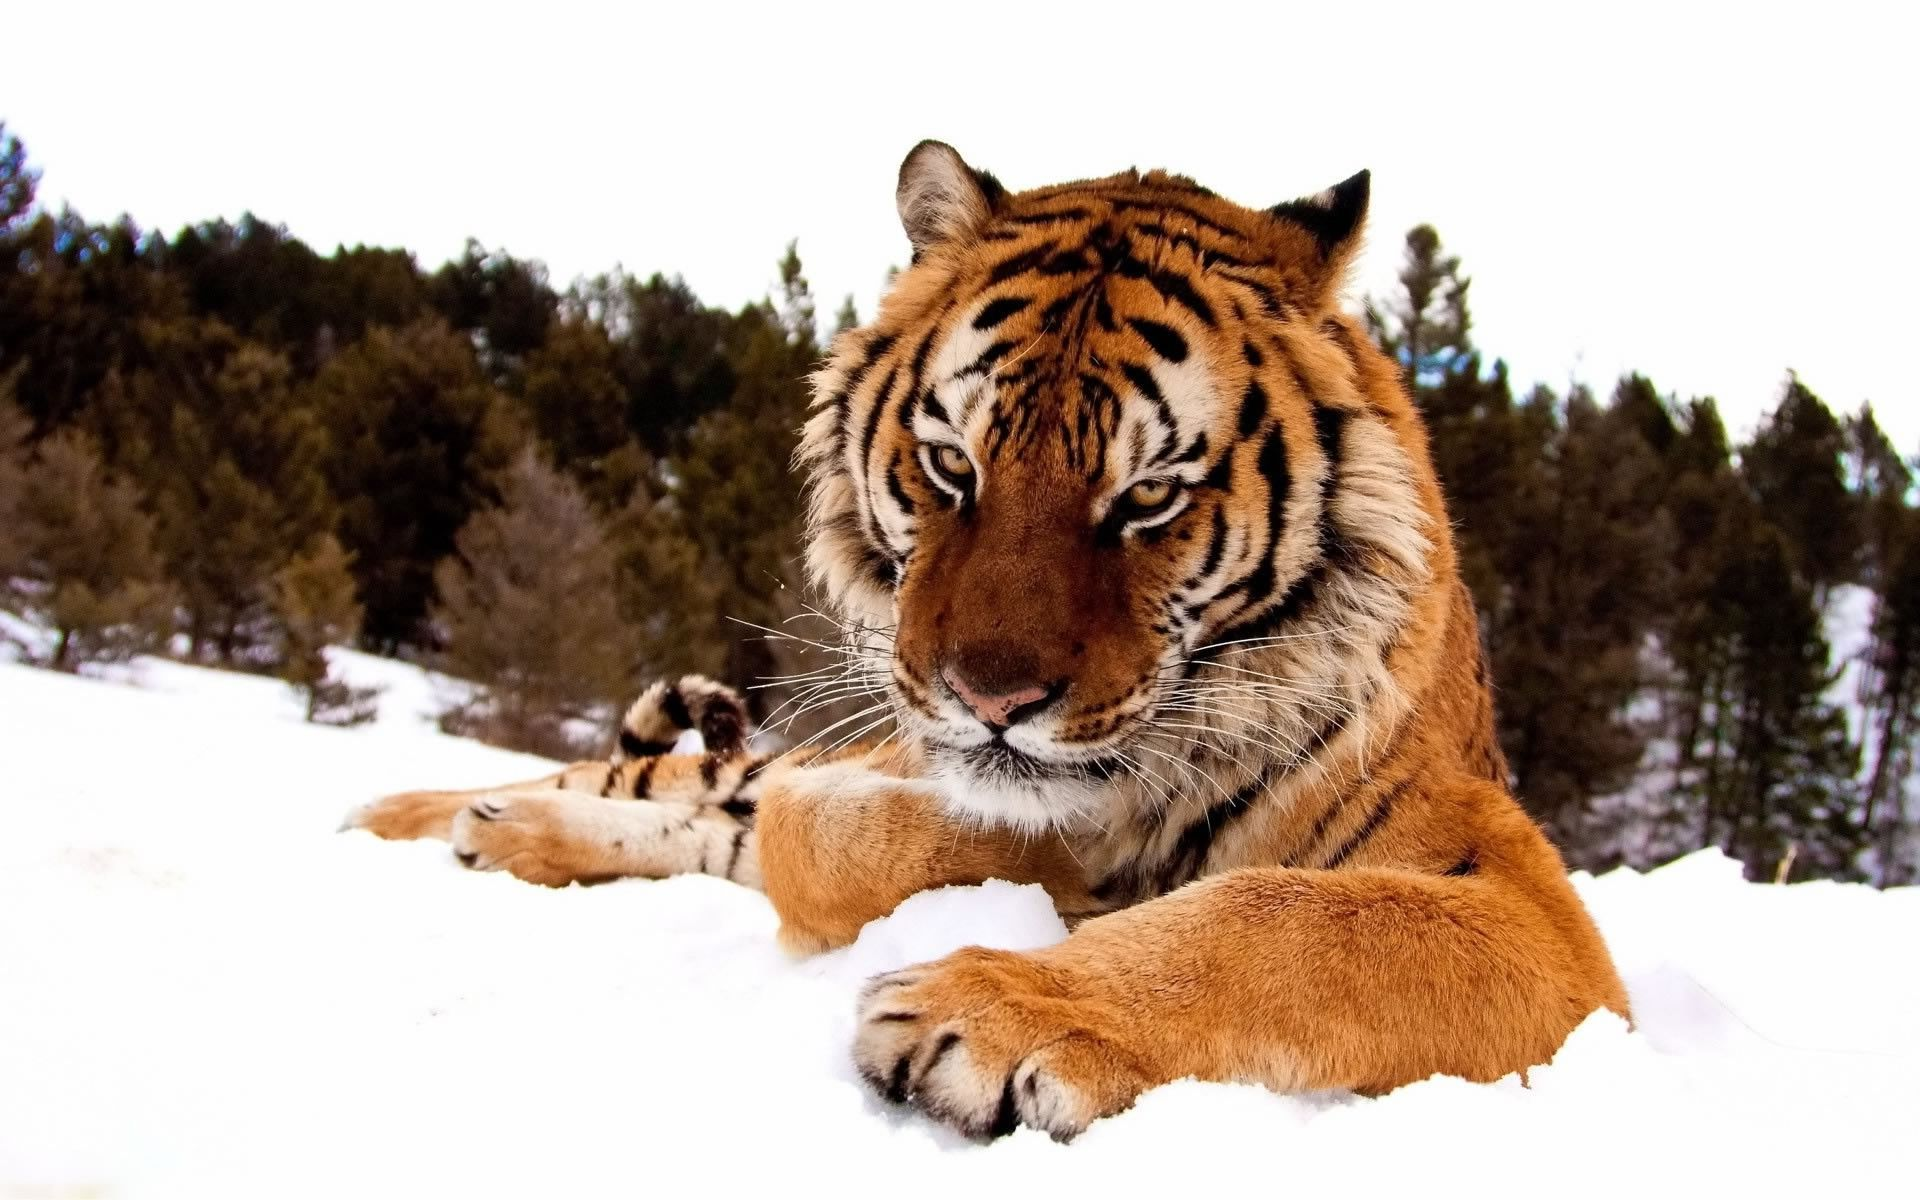 animals, Snow, Tiger Wallpapers HD / Desktop and Mobile Backgrounds